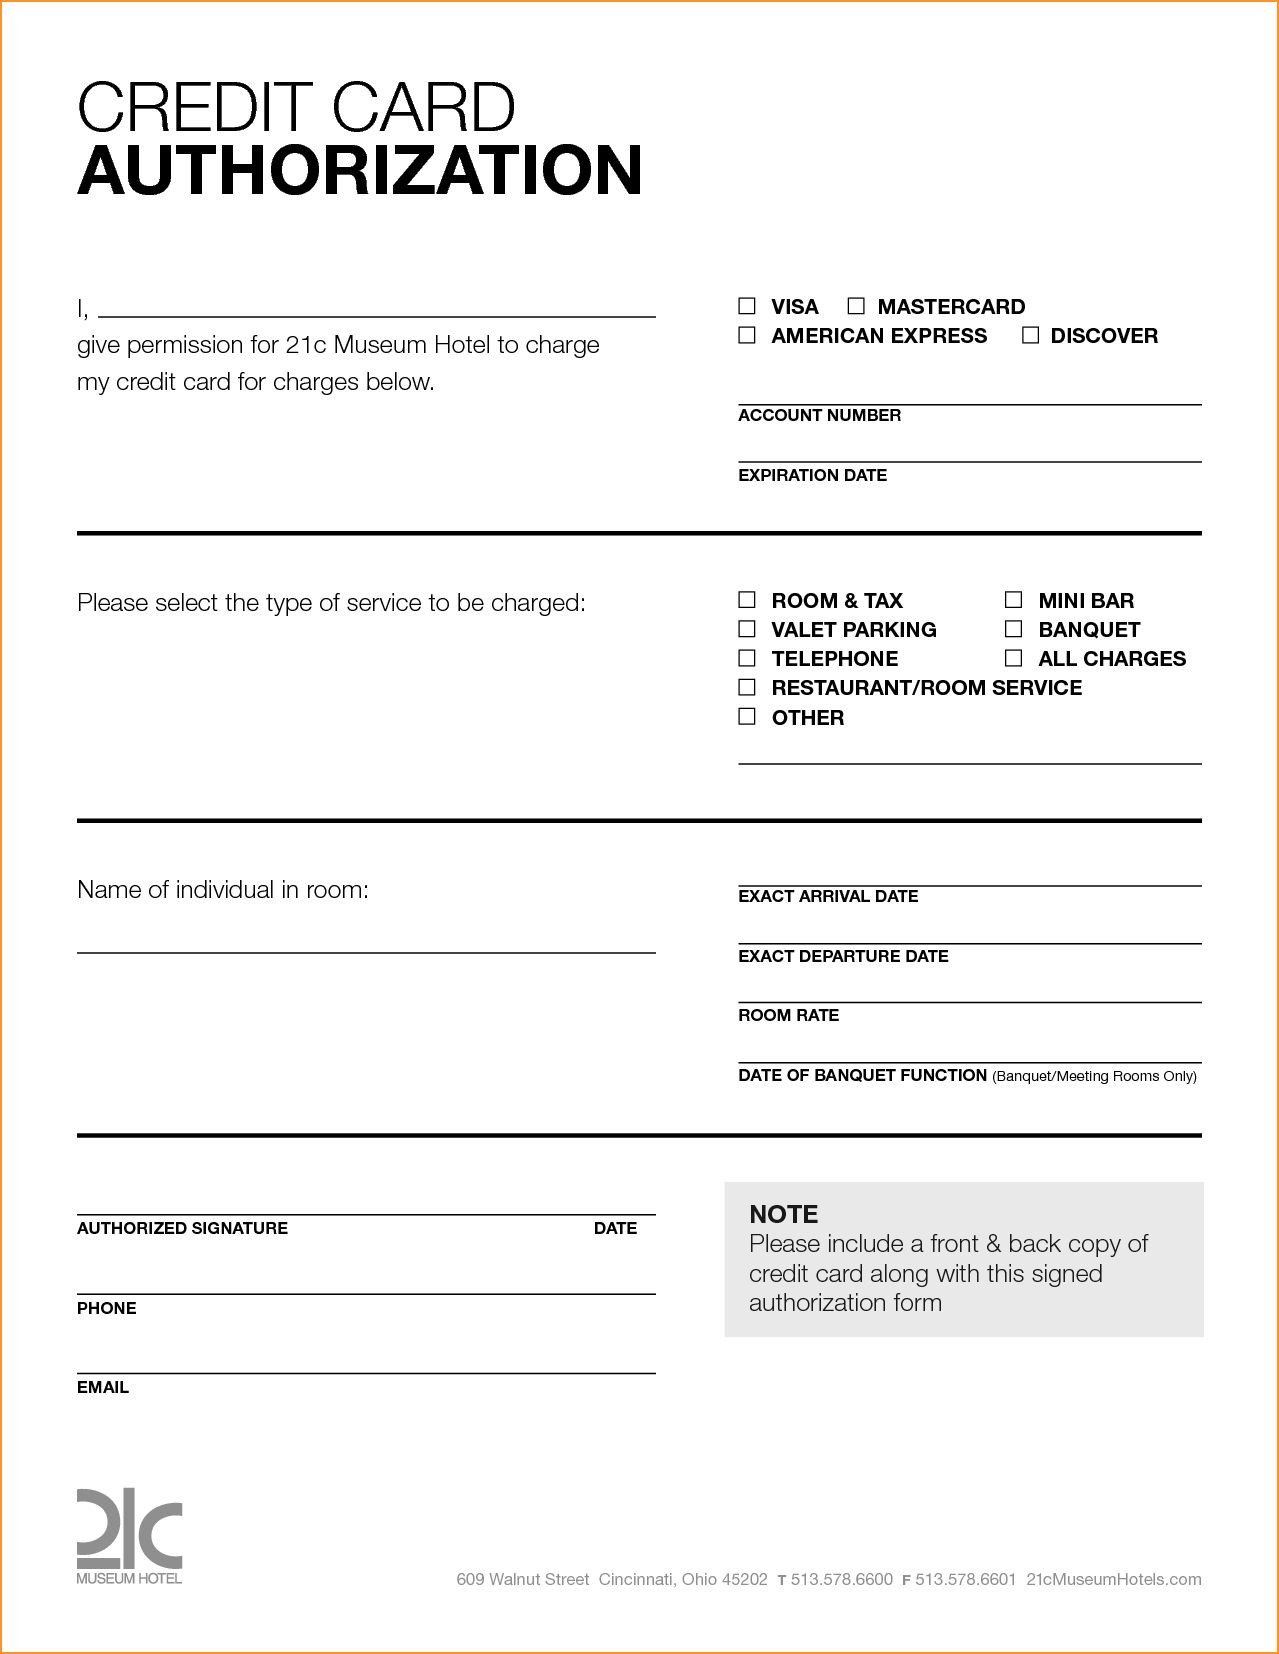 Free Printable Credit Card Authorization Form Blank Pin in